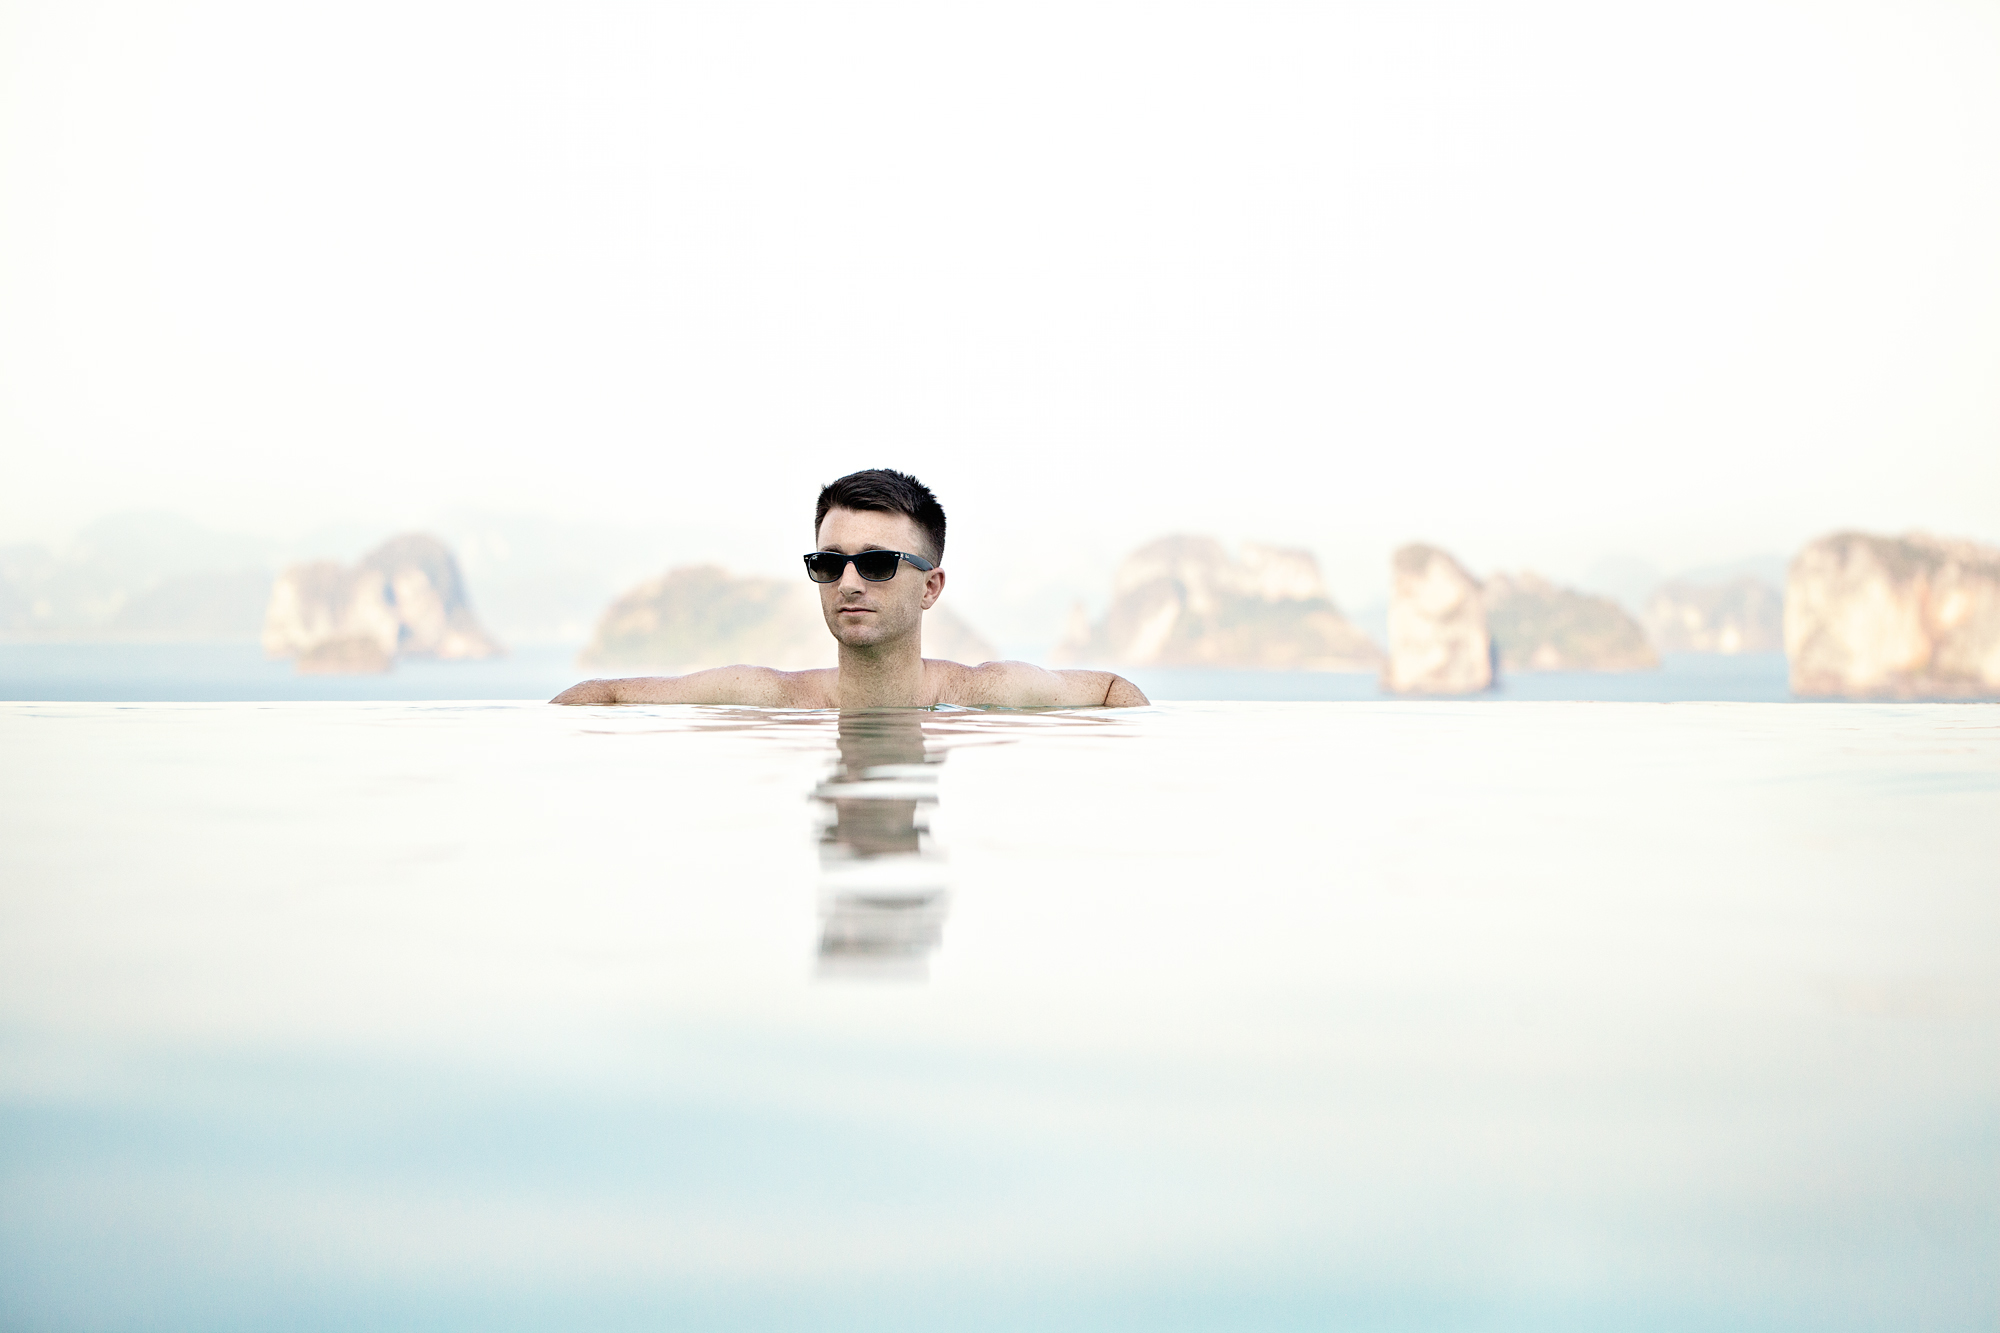 Relaxing in the infinity pool at the Hilltop Reserve, Six Senses, Yao Noi